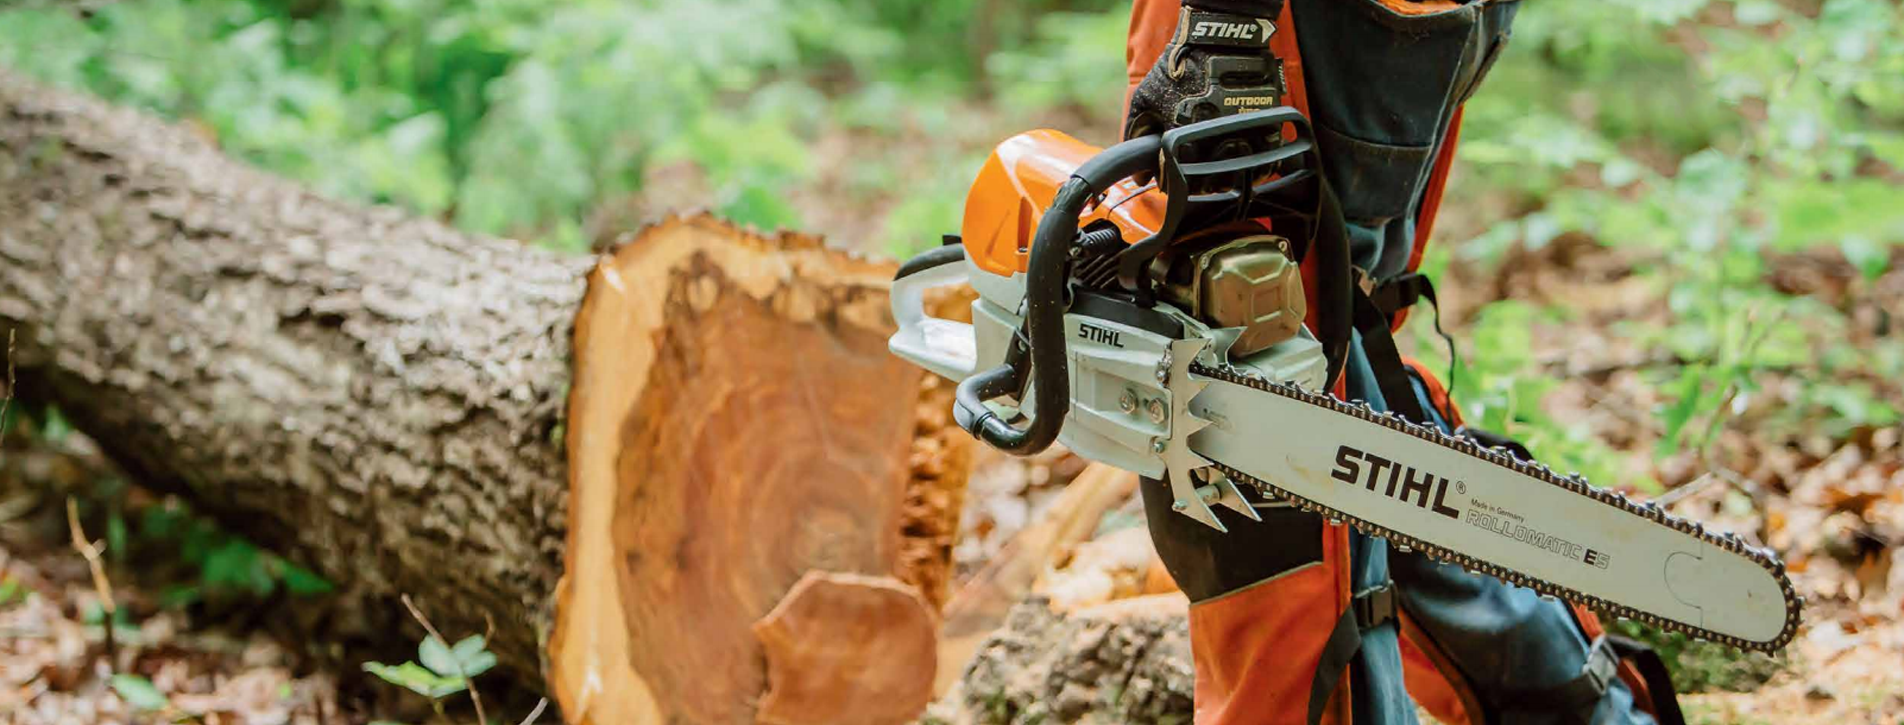 We have a complete inventory of Stihl products!